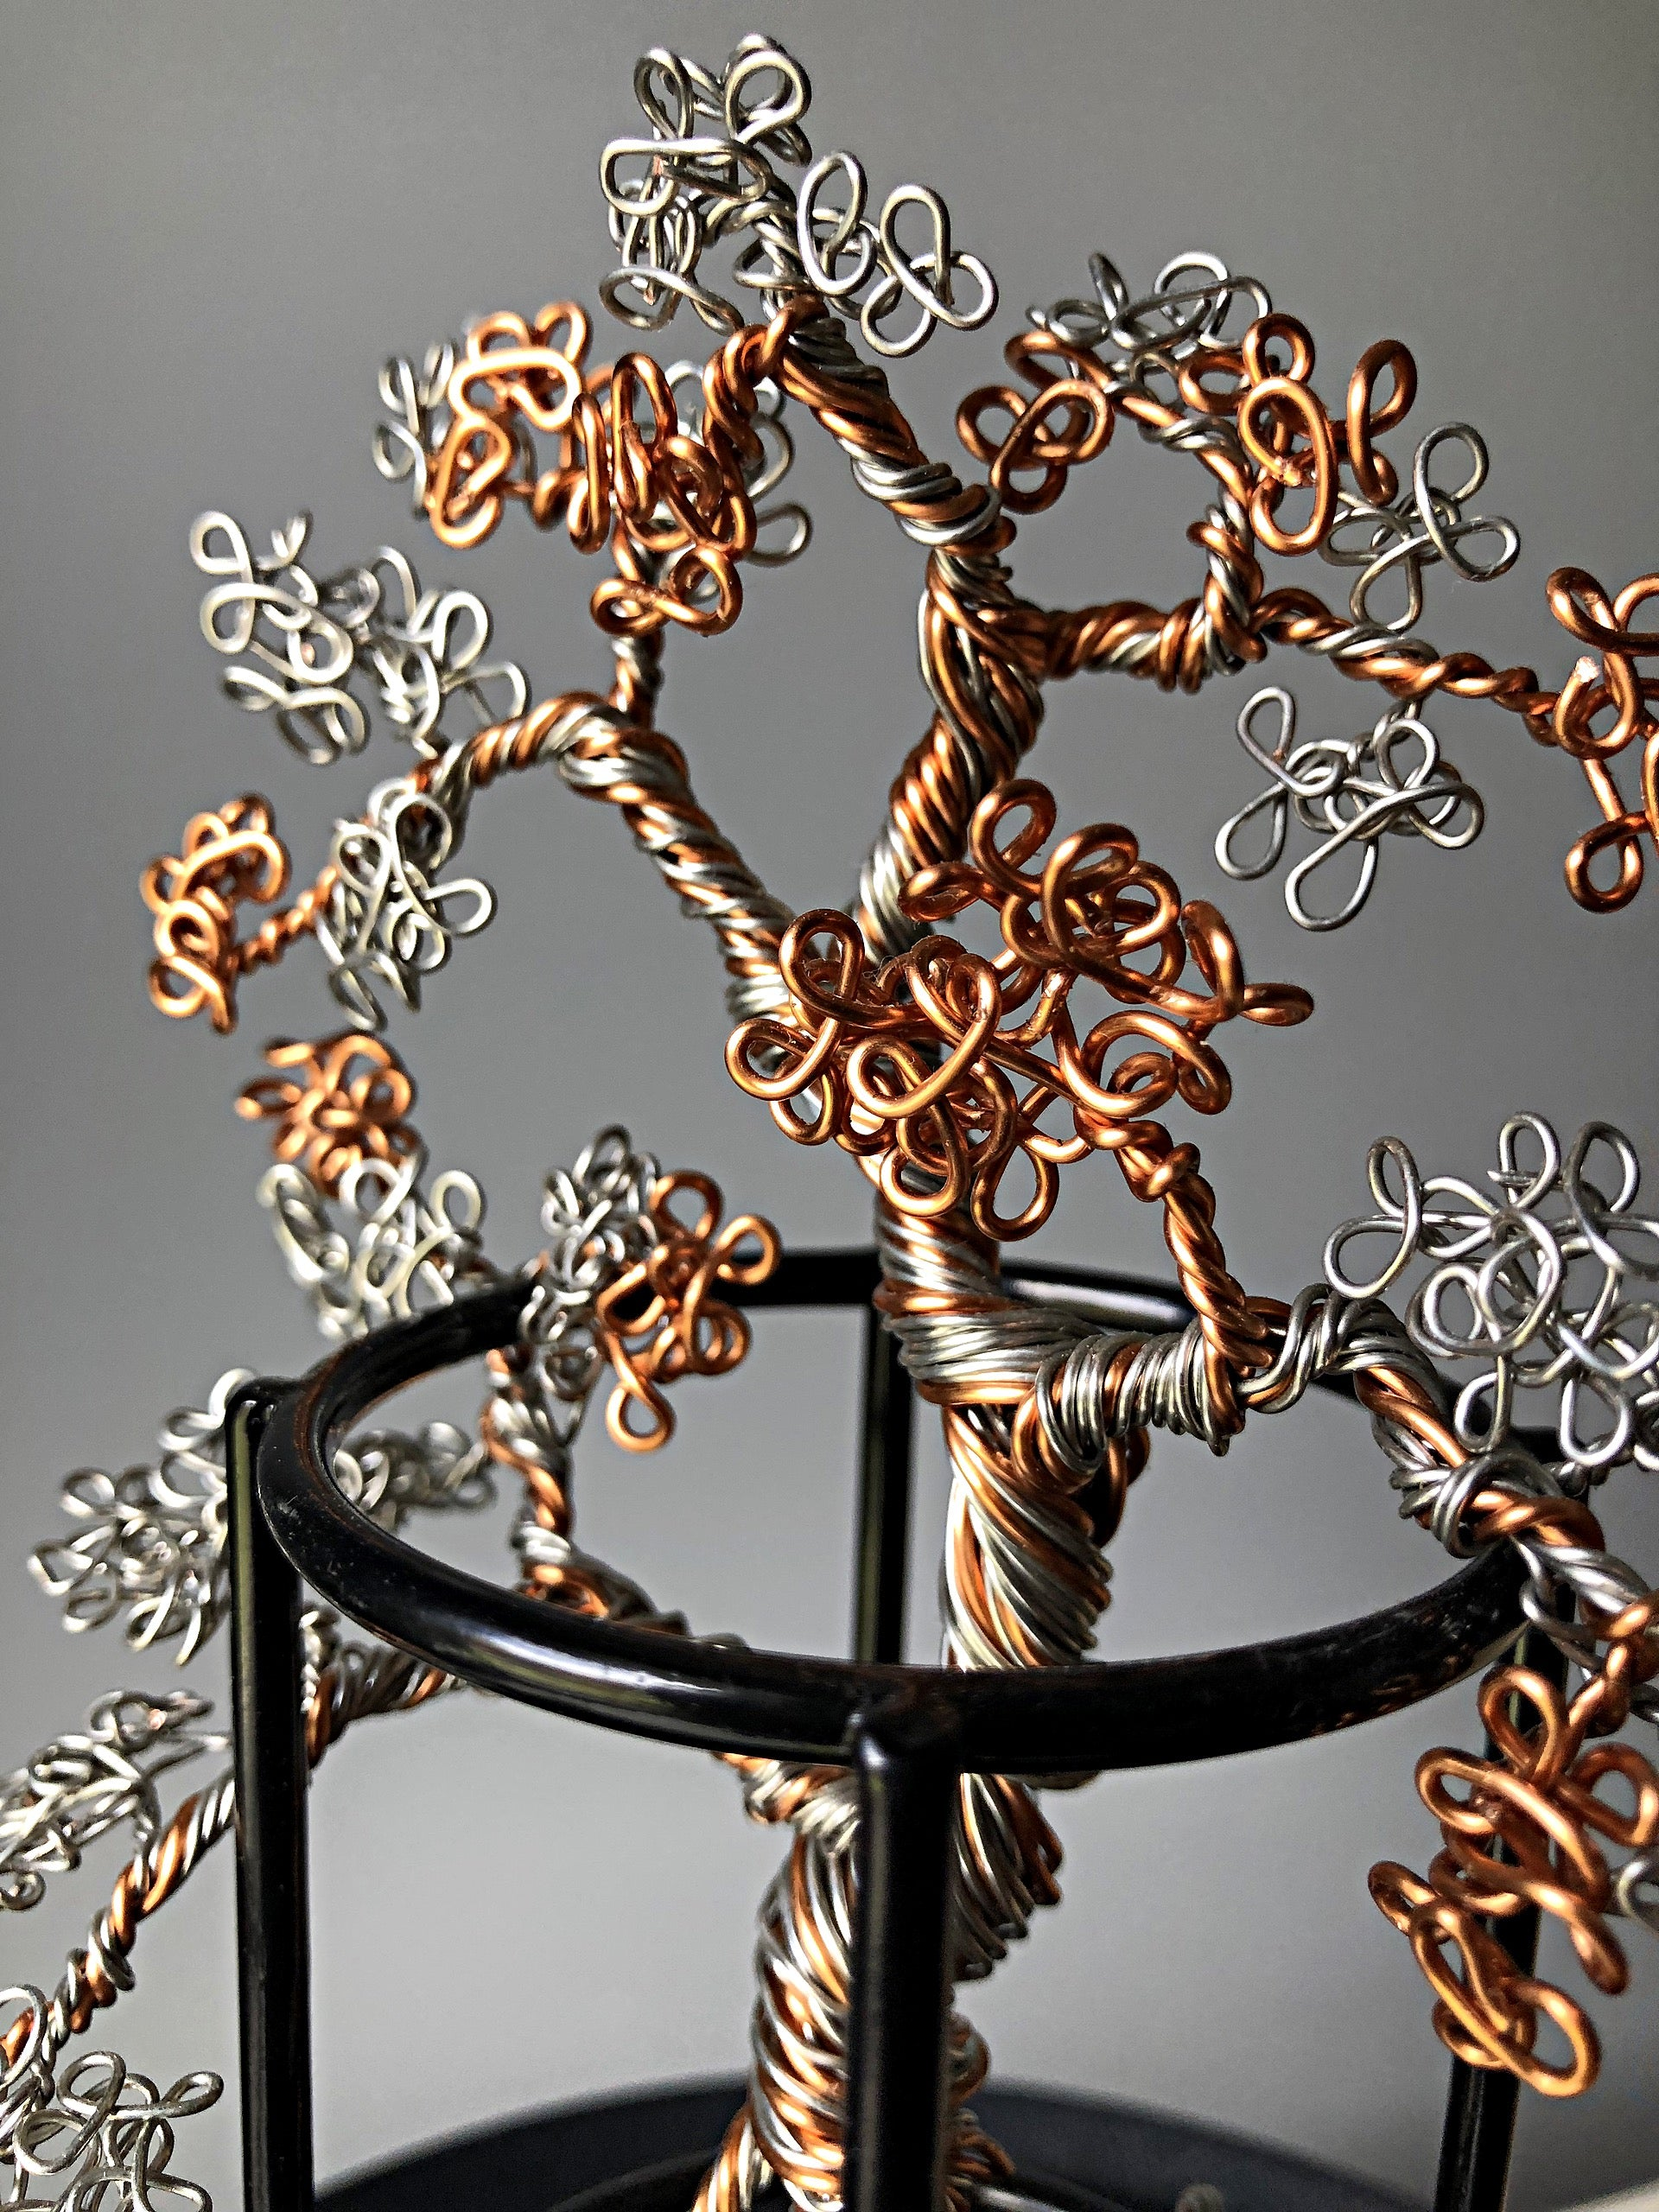 Copper & Silver Bonsai Sculpture